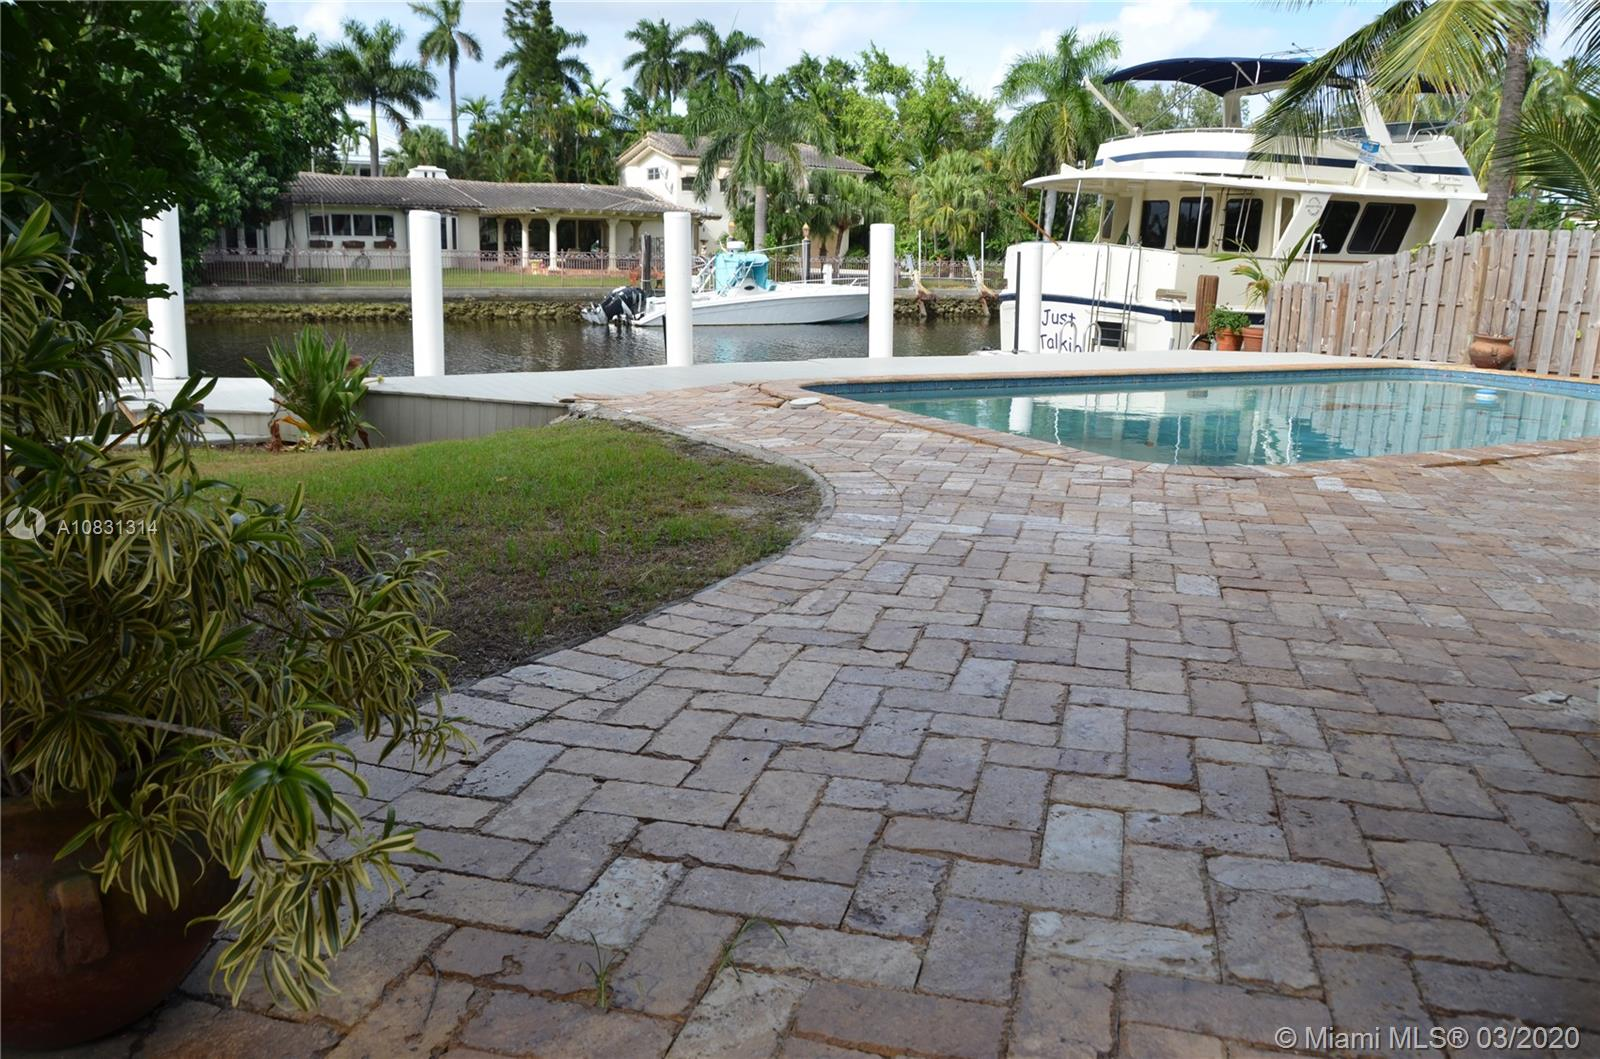 Charming Spanish Colonial Era, Seven Isles home.  Elegant 3 Bedroom + OFFICE + Video Game/TV room/ 4 Bath.  Large patio and pool, perfect for entertaining.  Three way split floor plan.  Main Master bedroom and 3rd bedroom go out to the pool and large back patio.  Second Master Bedroom goes out to a court yard that leads to the pool and dock area.  Park your boat bu the 50' long dock built on this 60' canal front lot with no fixed bridges access to Ocean.  In addition to the circular driveway there is a large parking area on the right side of the house, perfect to park more cars, motorcycles, small boats, jet skis, etc. 